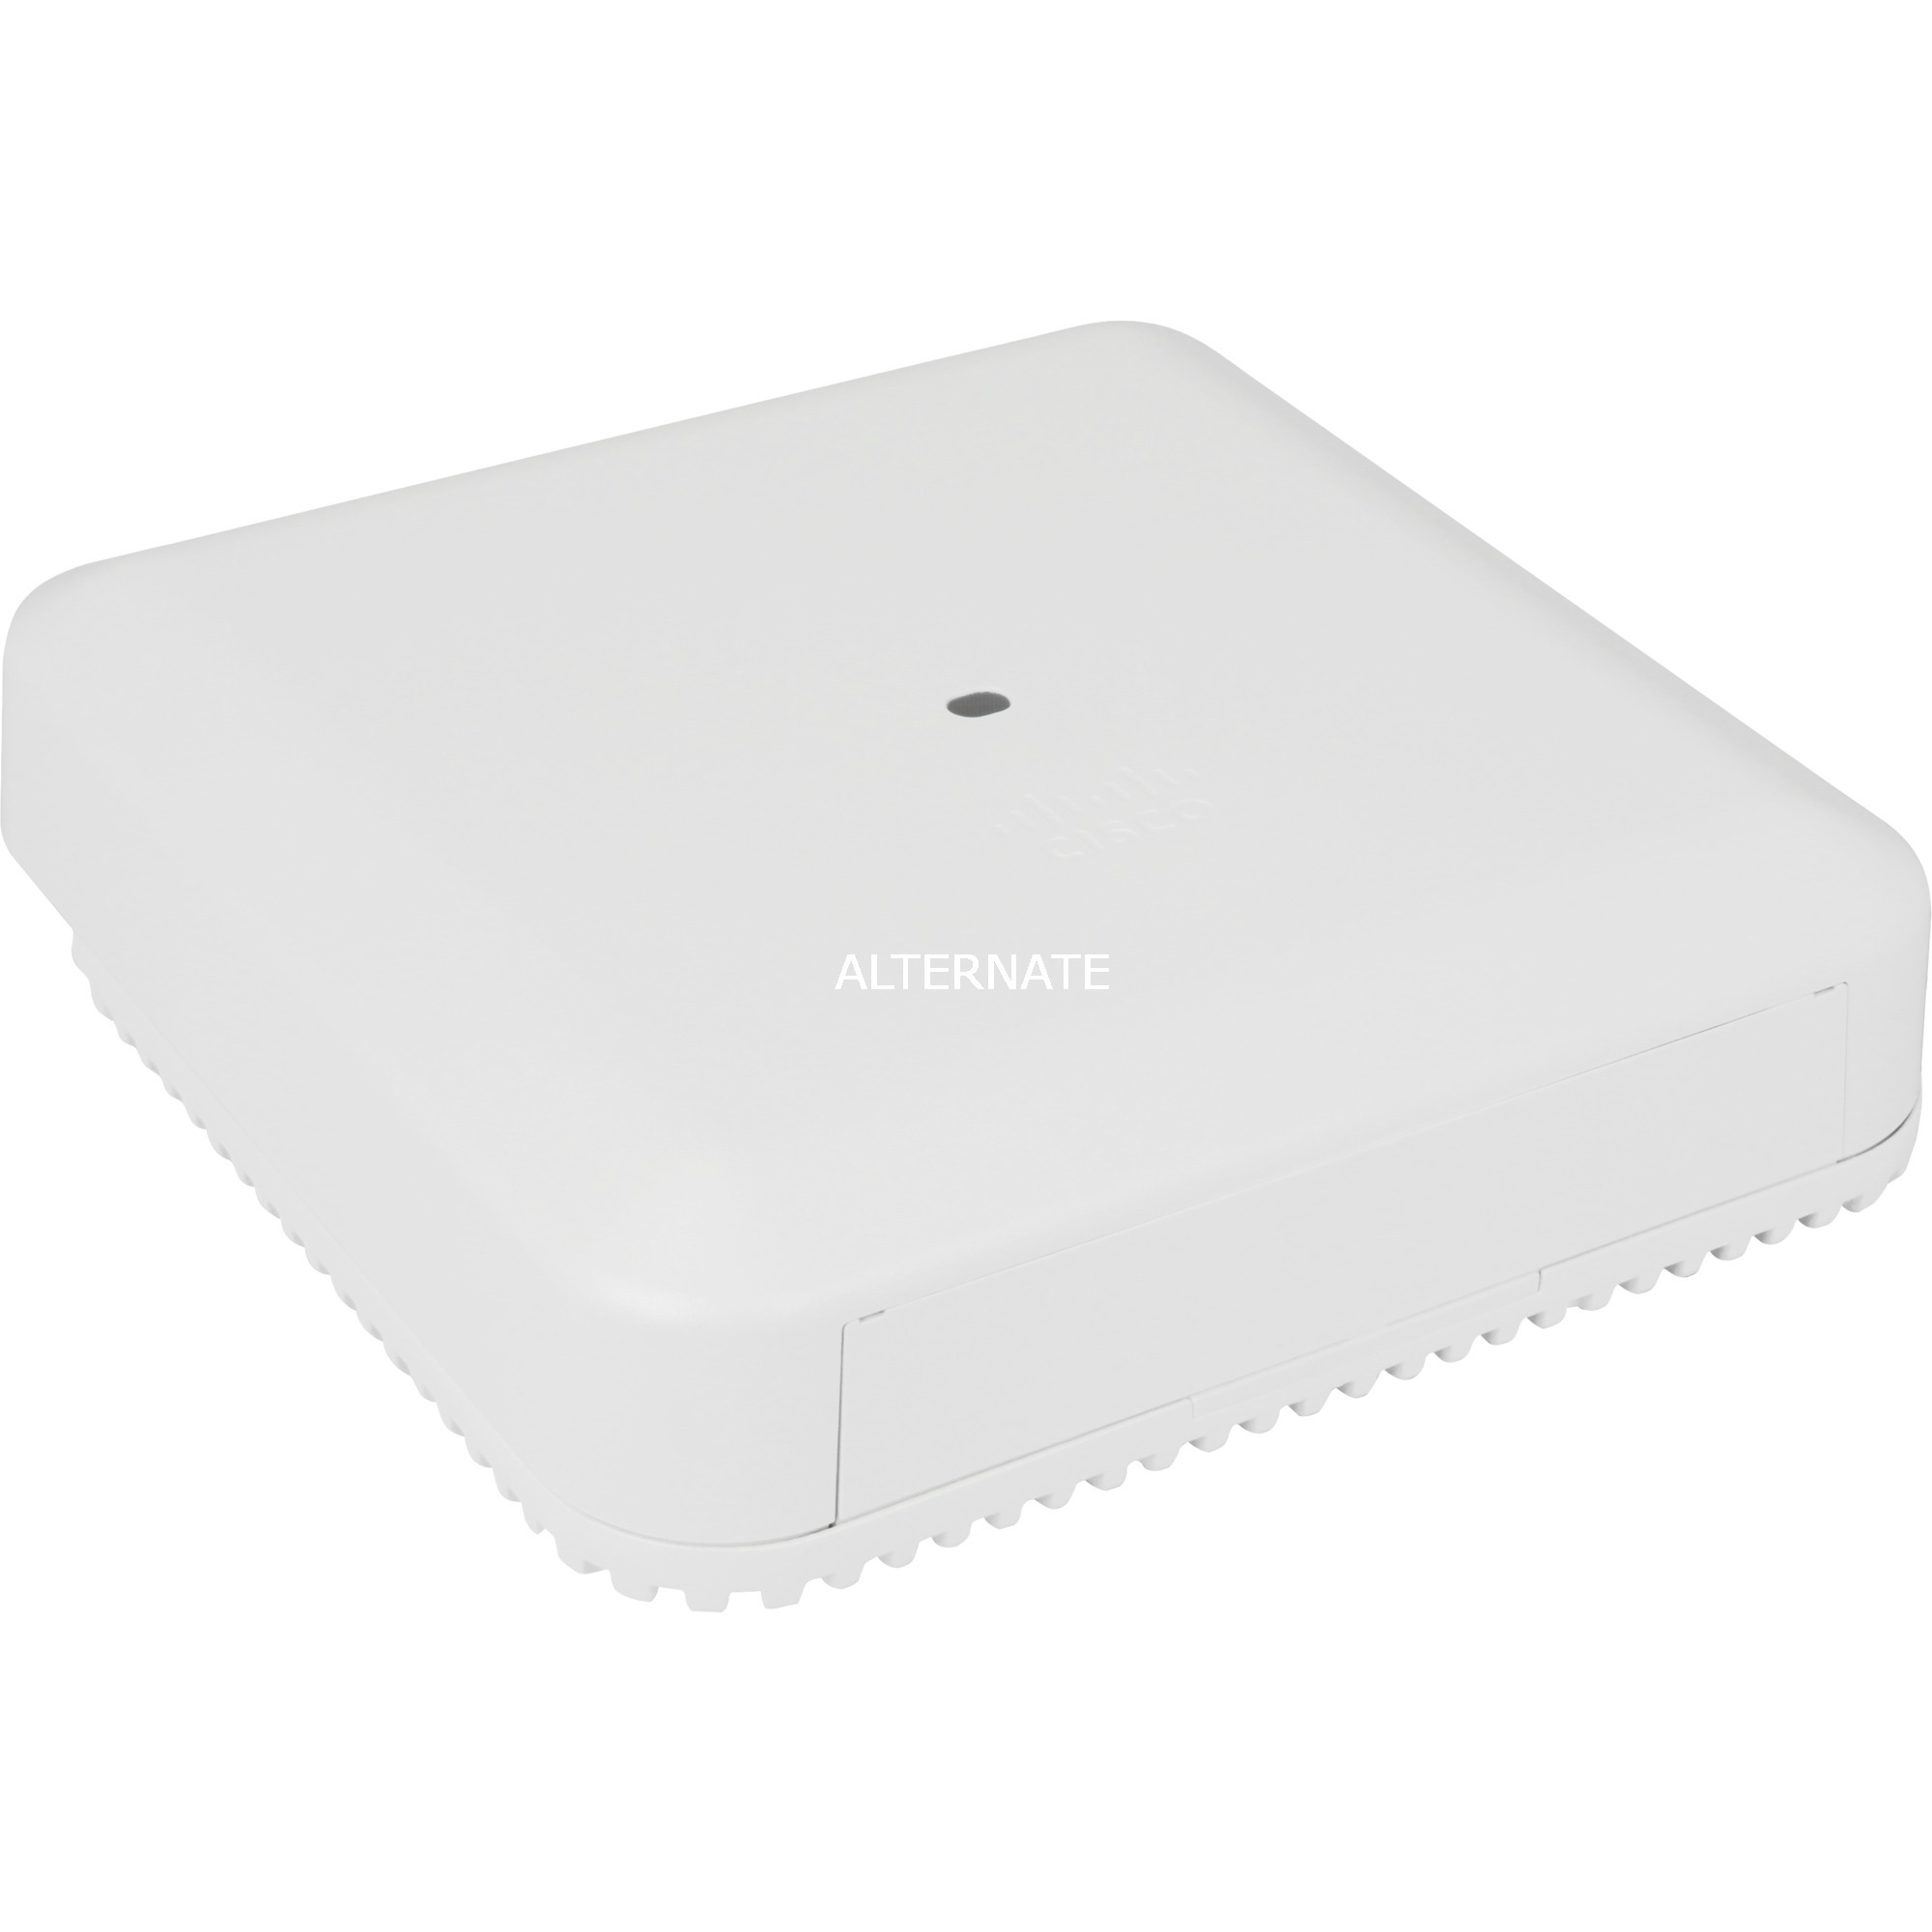 Image of Aironet 3800i, Access Point